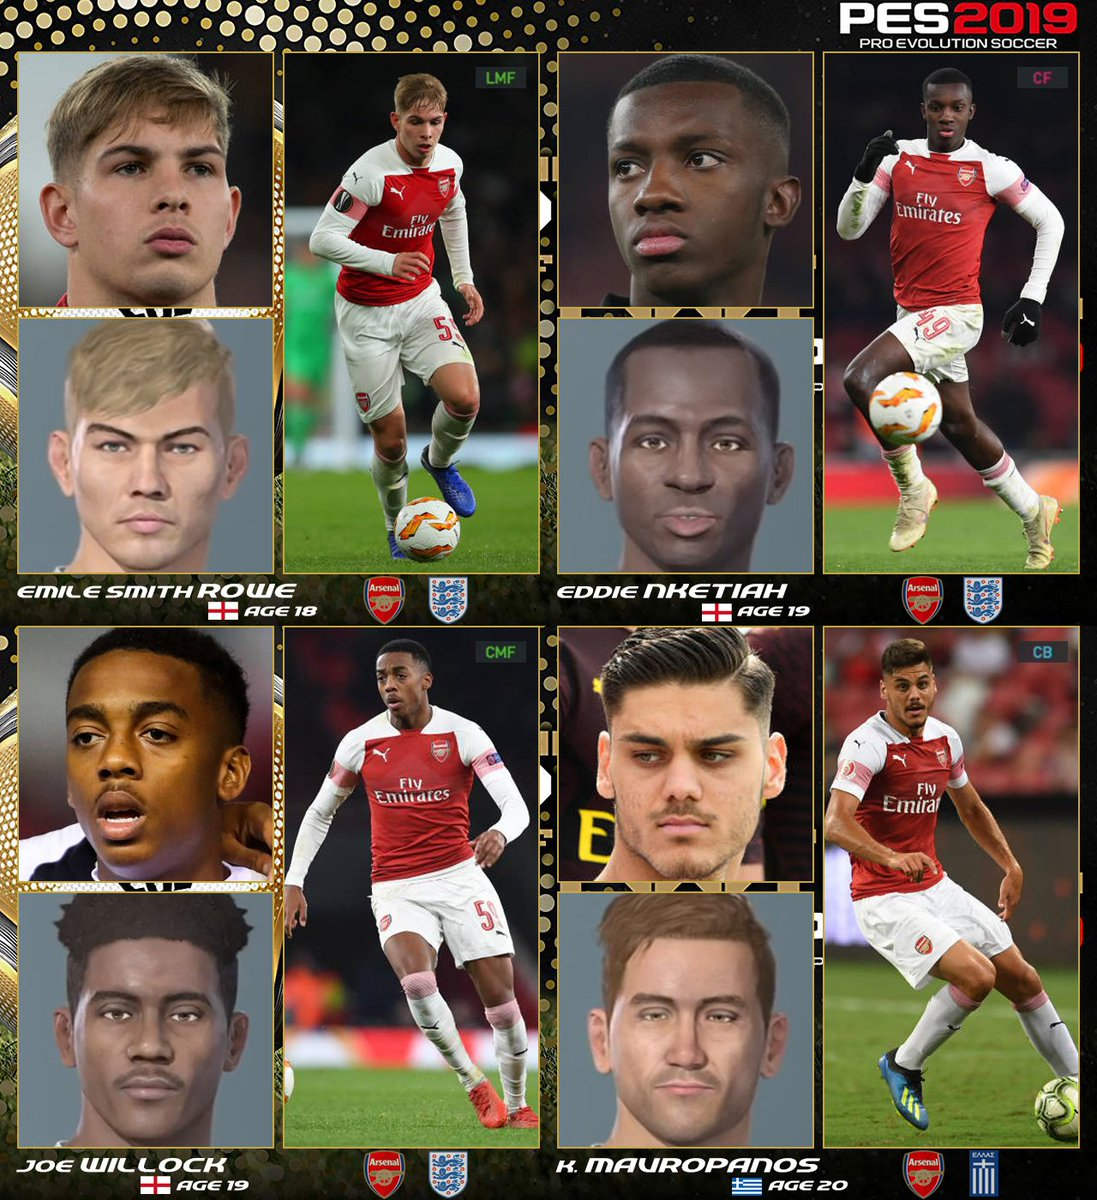 Pes 2021 Face Suggestions On Twitter Premier League Face Suggestions For Dlc 4 0 2 E Smith Rowe E Nketiah Willock K Mavropanos T Chong D Dalot